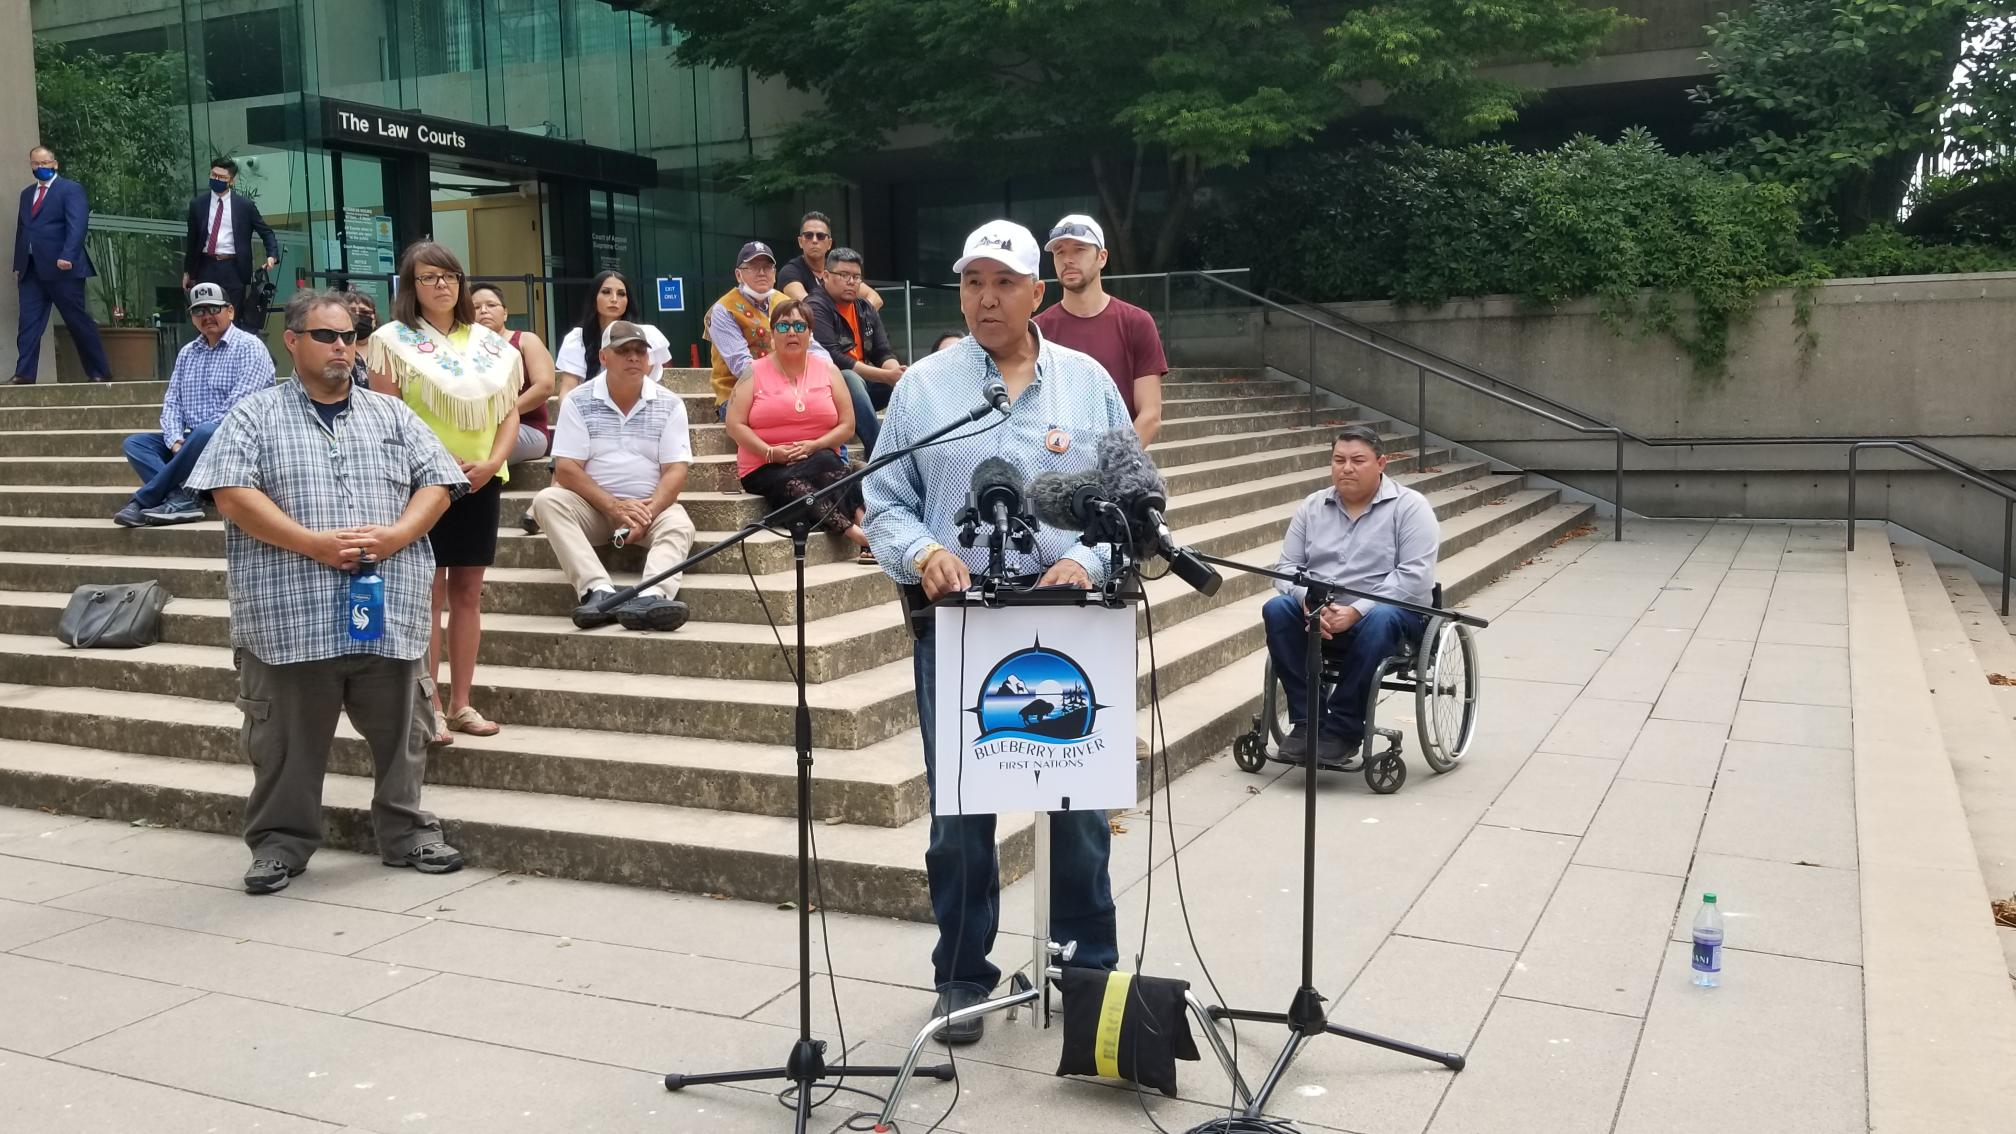 Chief Marvin Yahey of Blueberry River First Nations speaks at a press conference outside the Law Courts (Photo: Trevor Leach/David Suzuki Foundation)